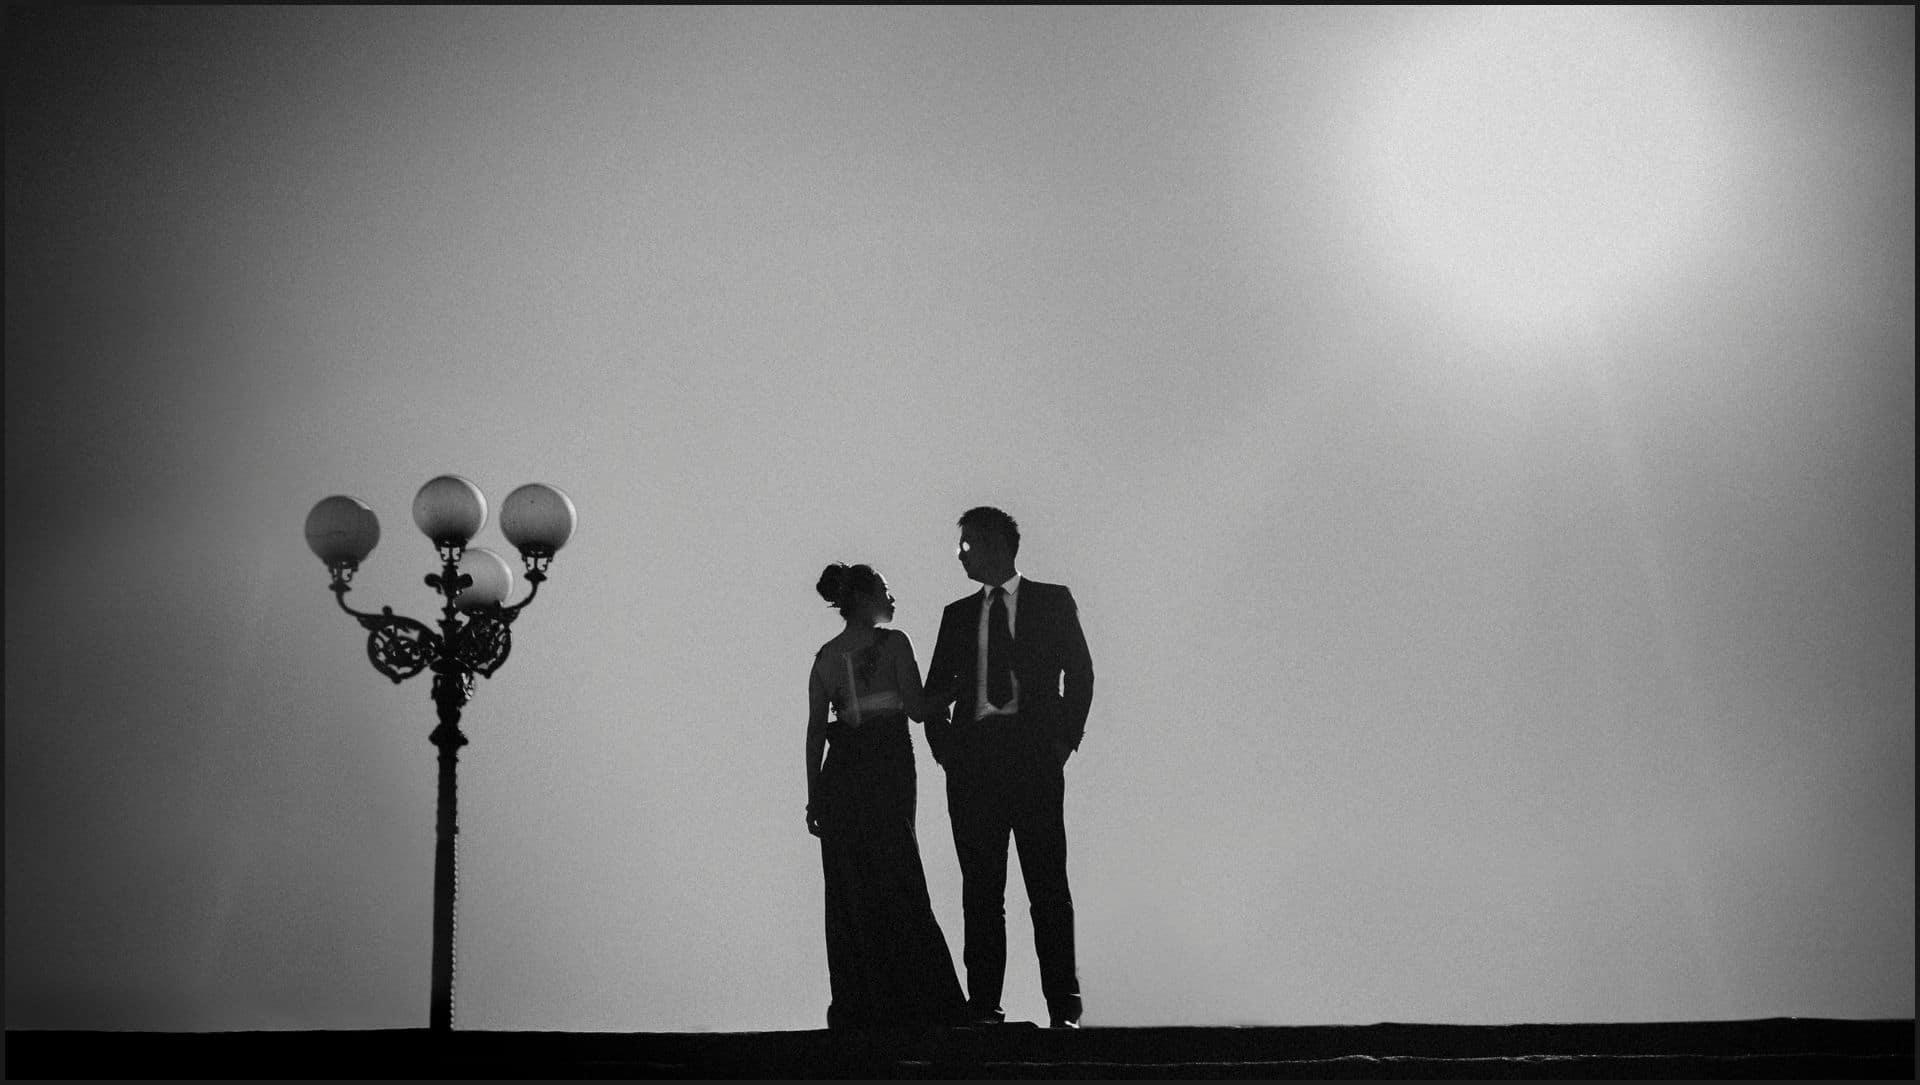 tuscany, wedding, florence, black and white, bride, groom